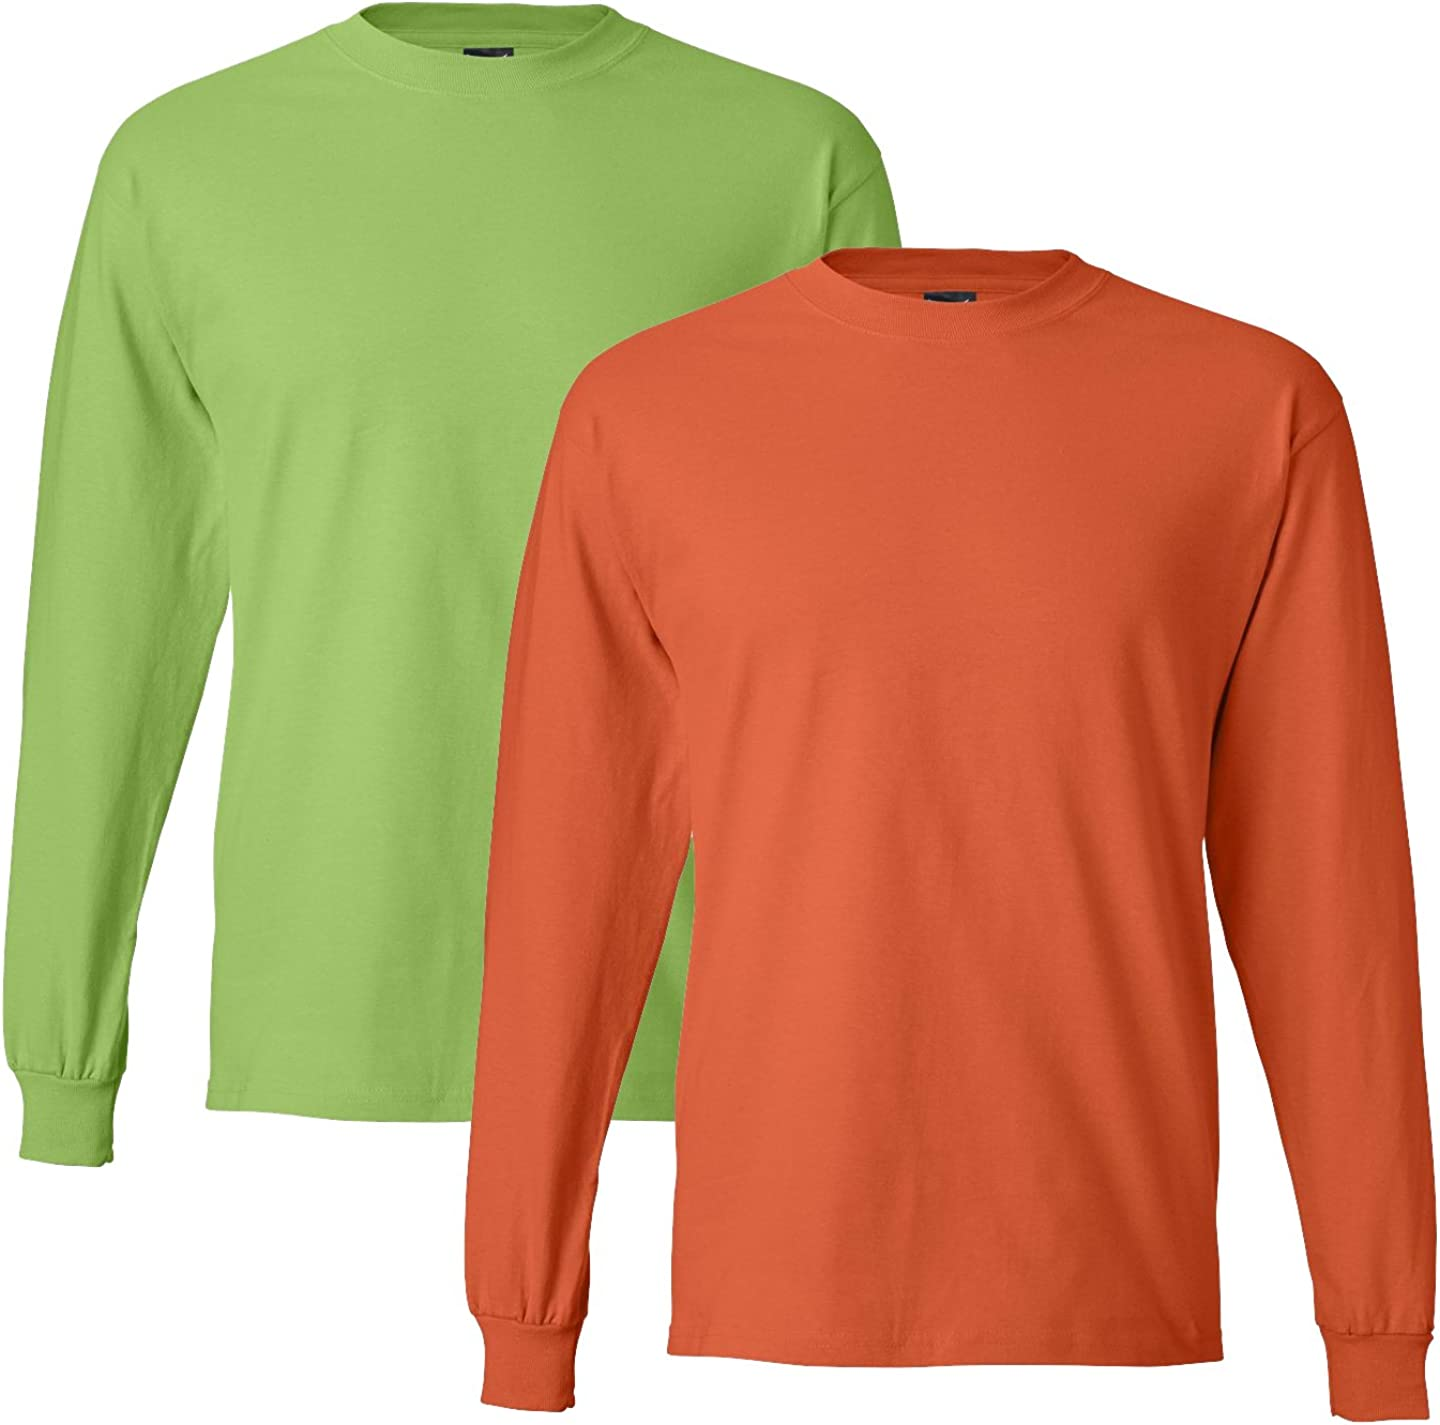 Hanes Mens Long-Sleeve Beefy-T Shirt Pack of 2